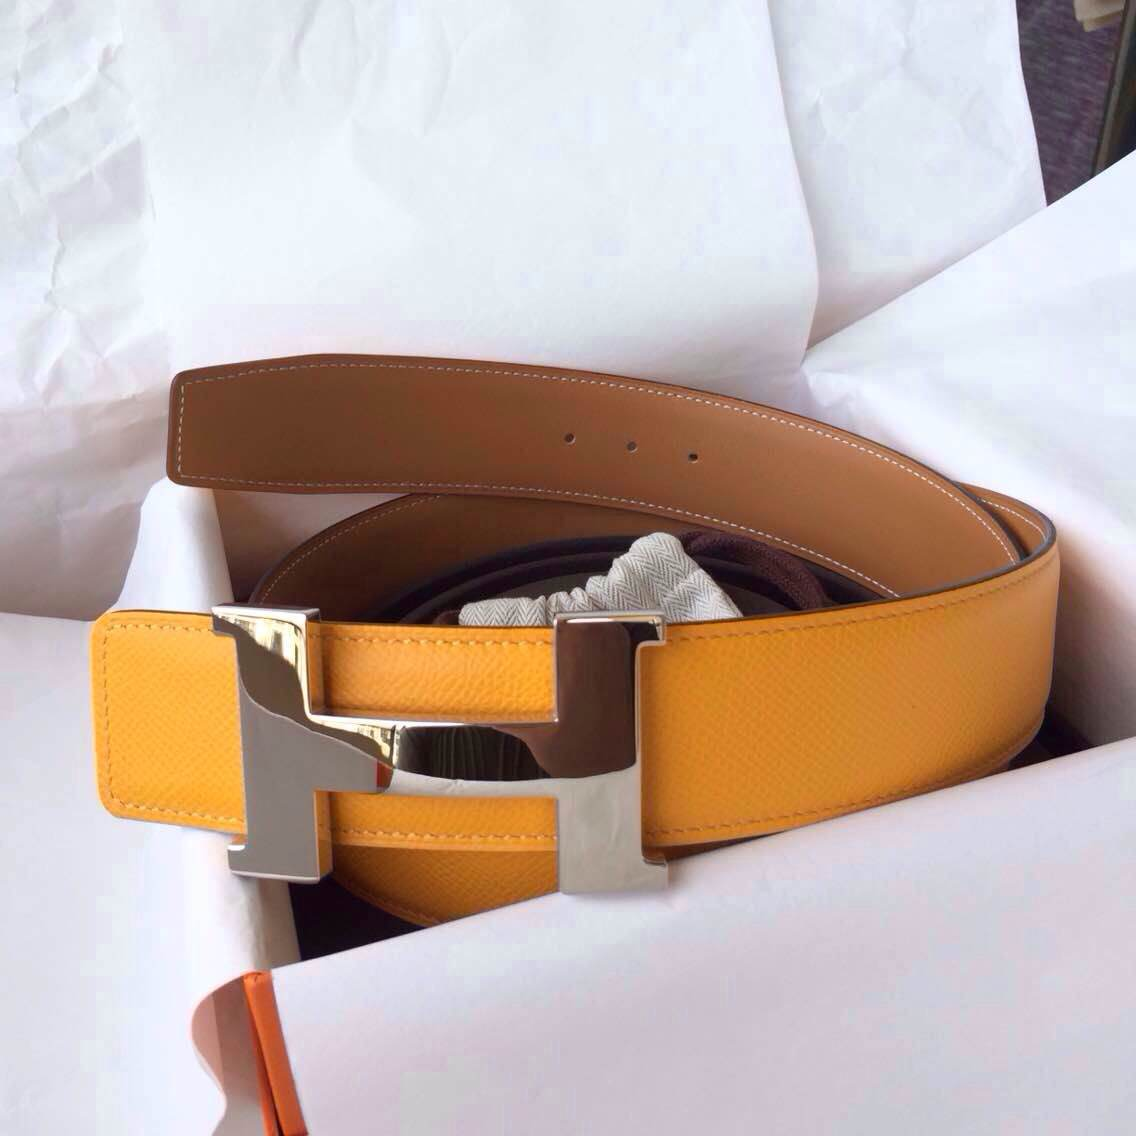 Cheap Hermes Two-sided Belt 42mm Width 9V Moutarde Epsom Leather/Light Coffee Box Leather